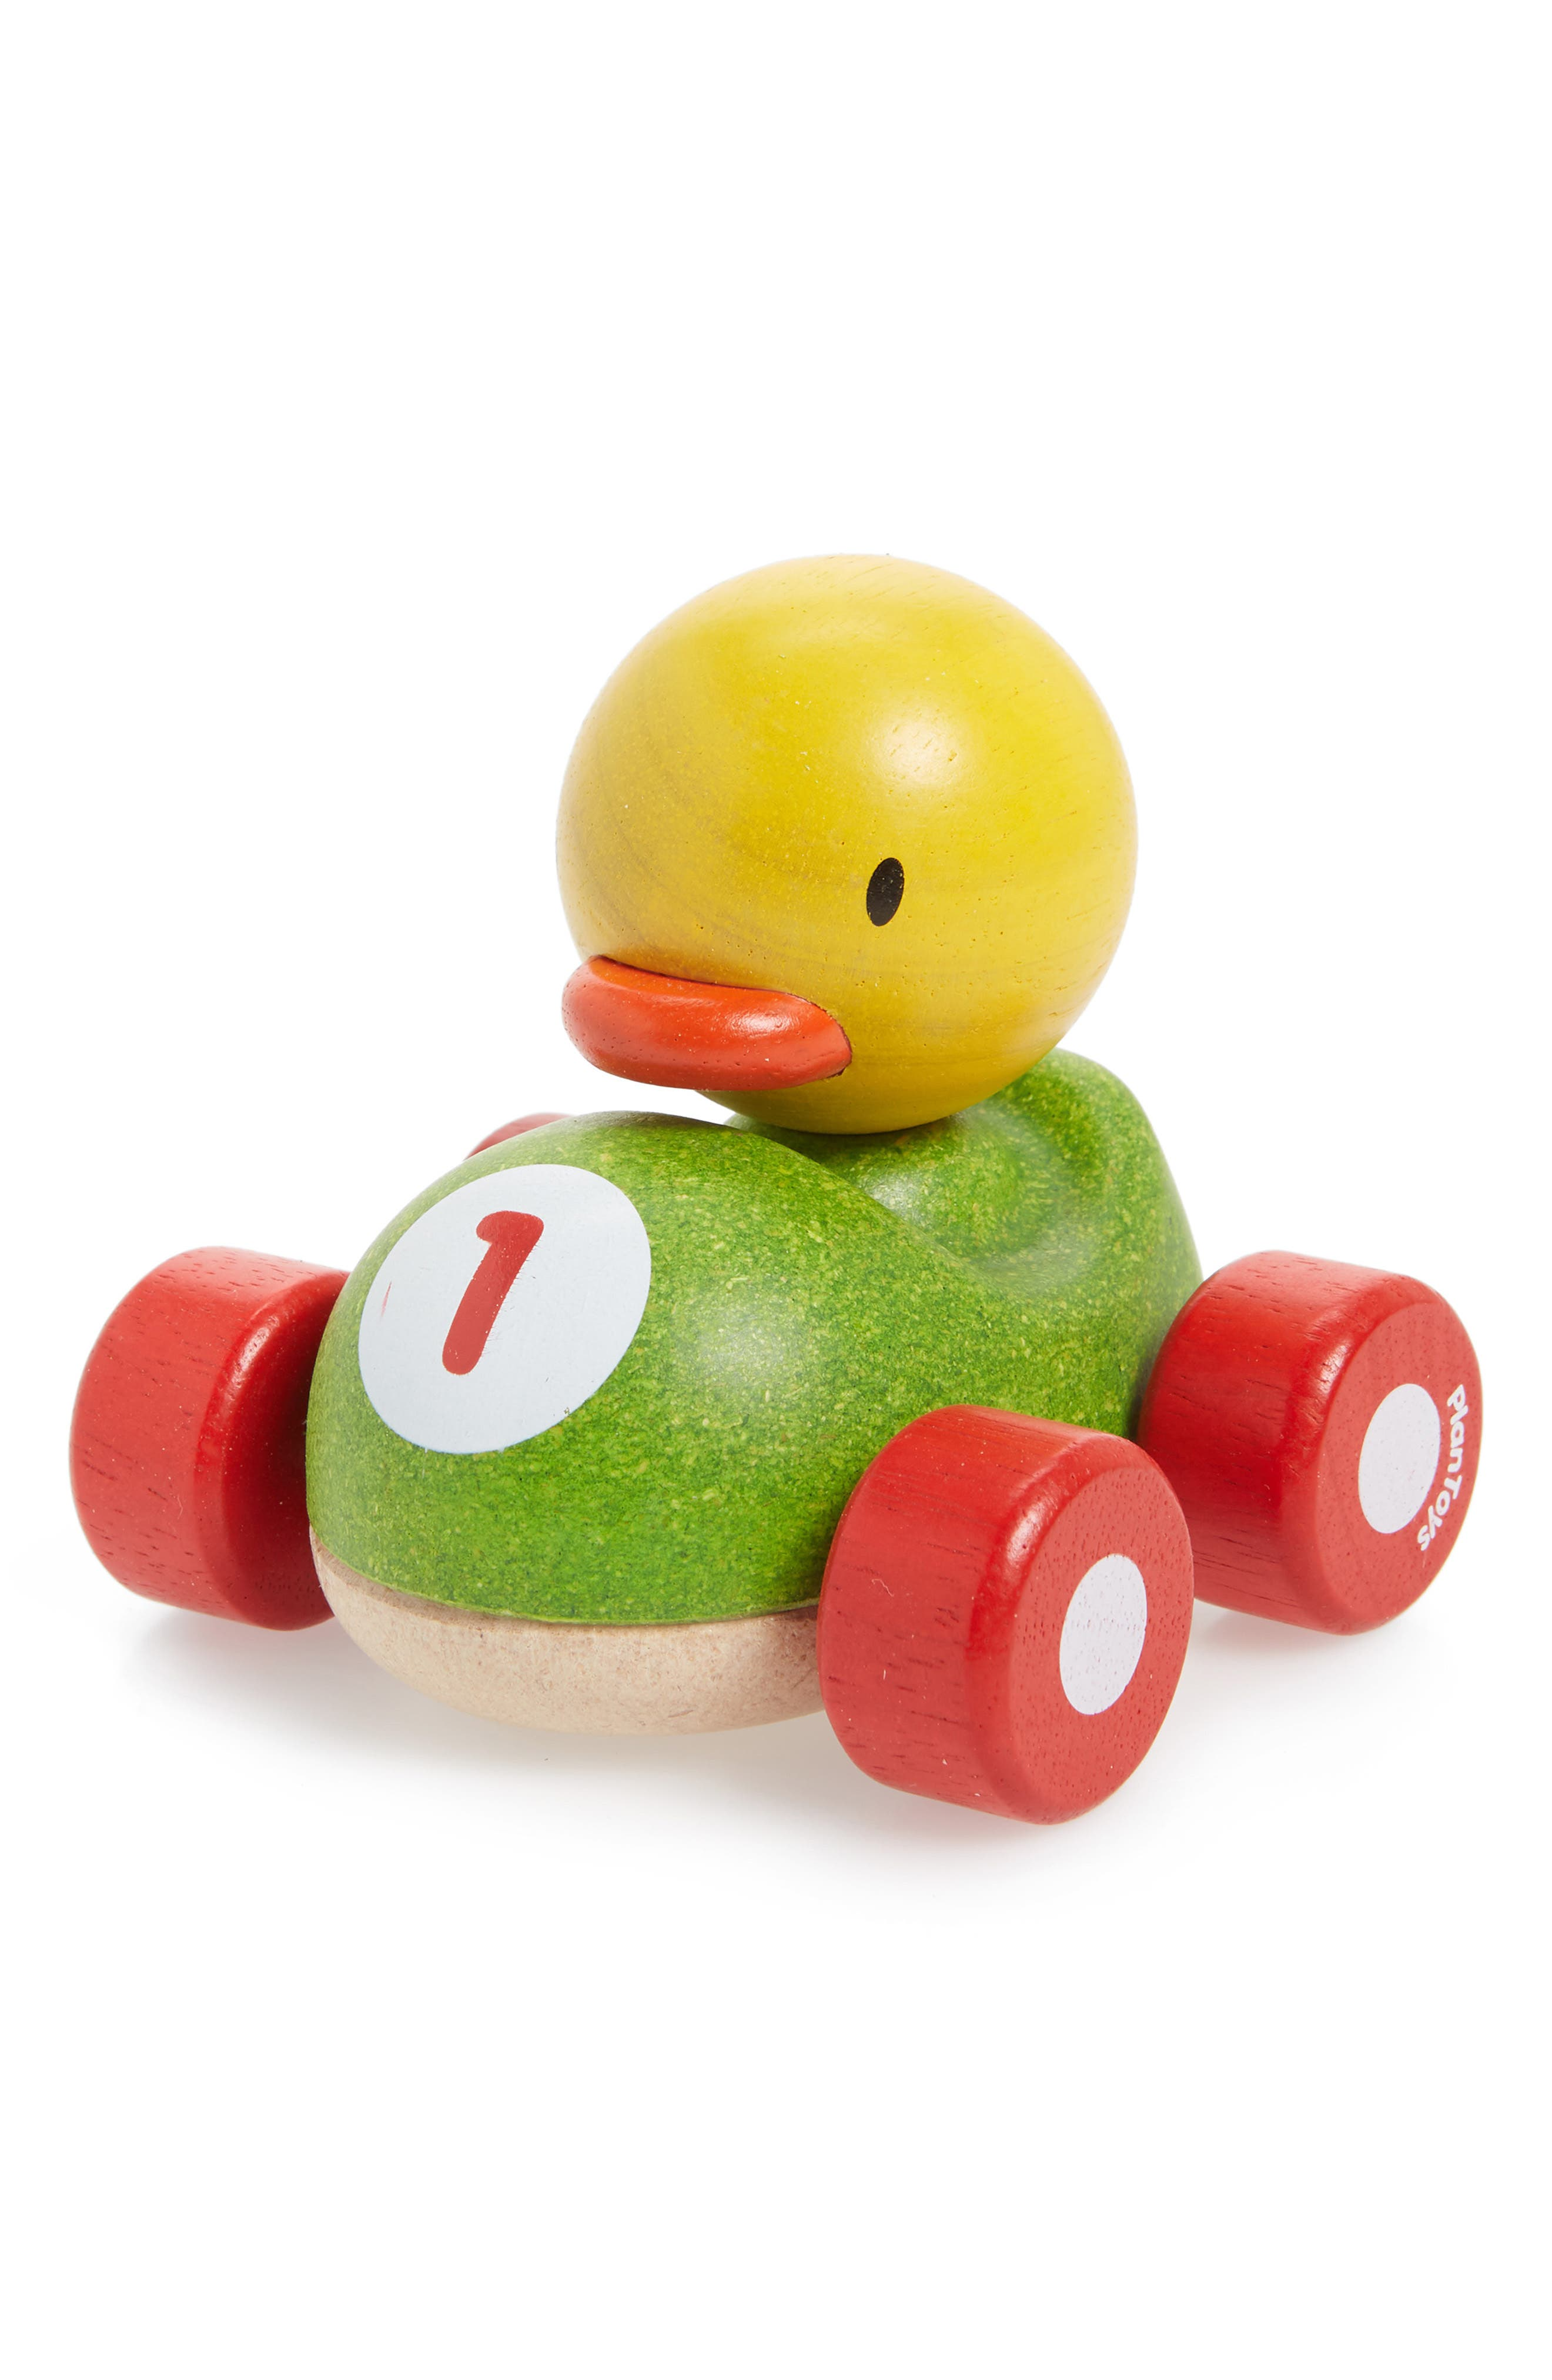 Plan Toys<sup>®</sup> Duck Racer Rolling Toy,                             Main thumbnail 1, color,                             Multi